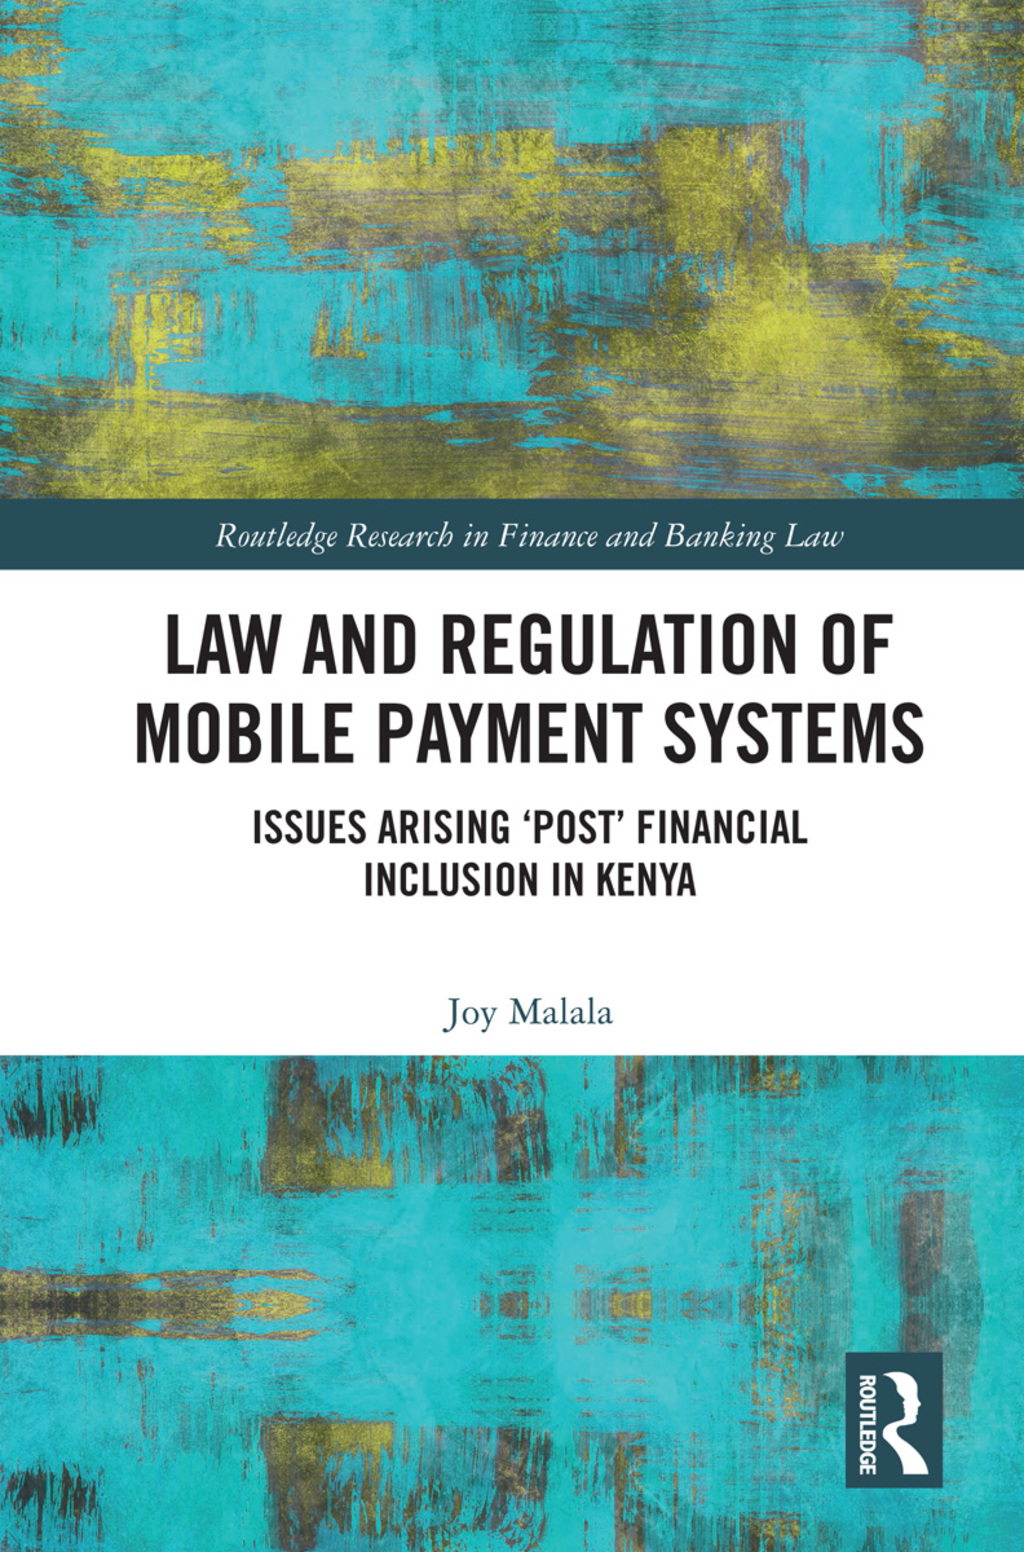 Law and Regulation of Mobile Payment Systems (eBook Rental)